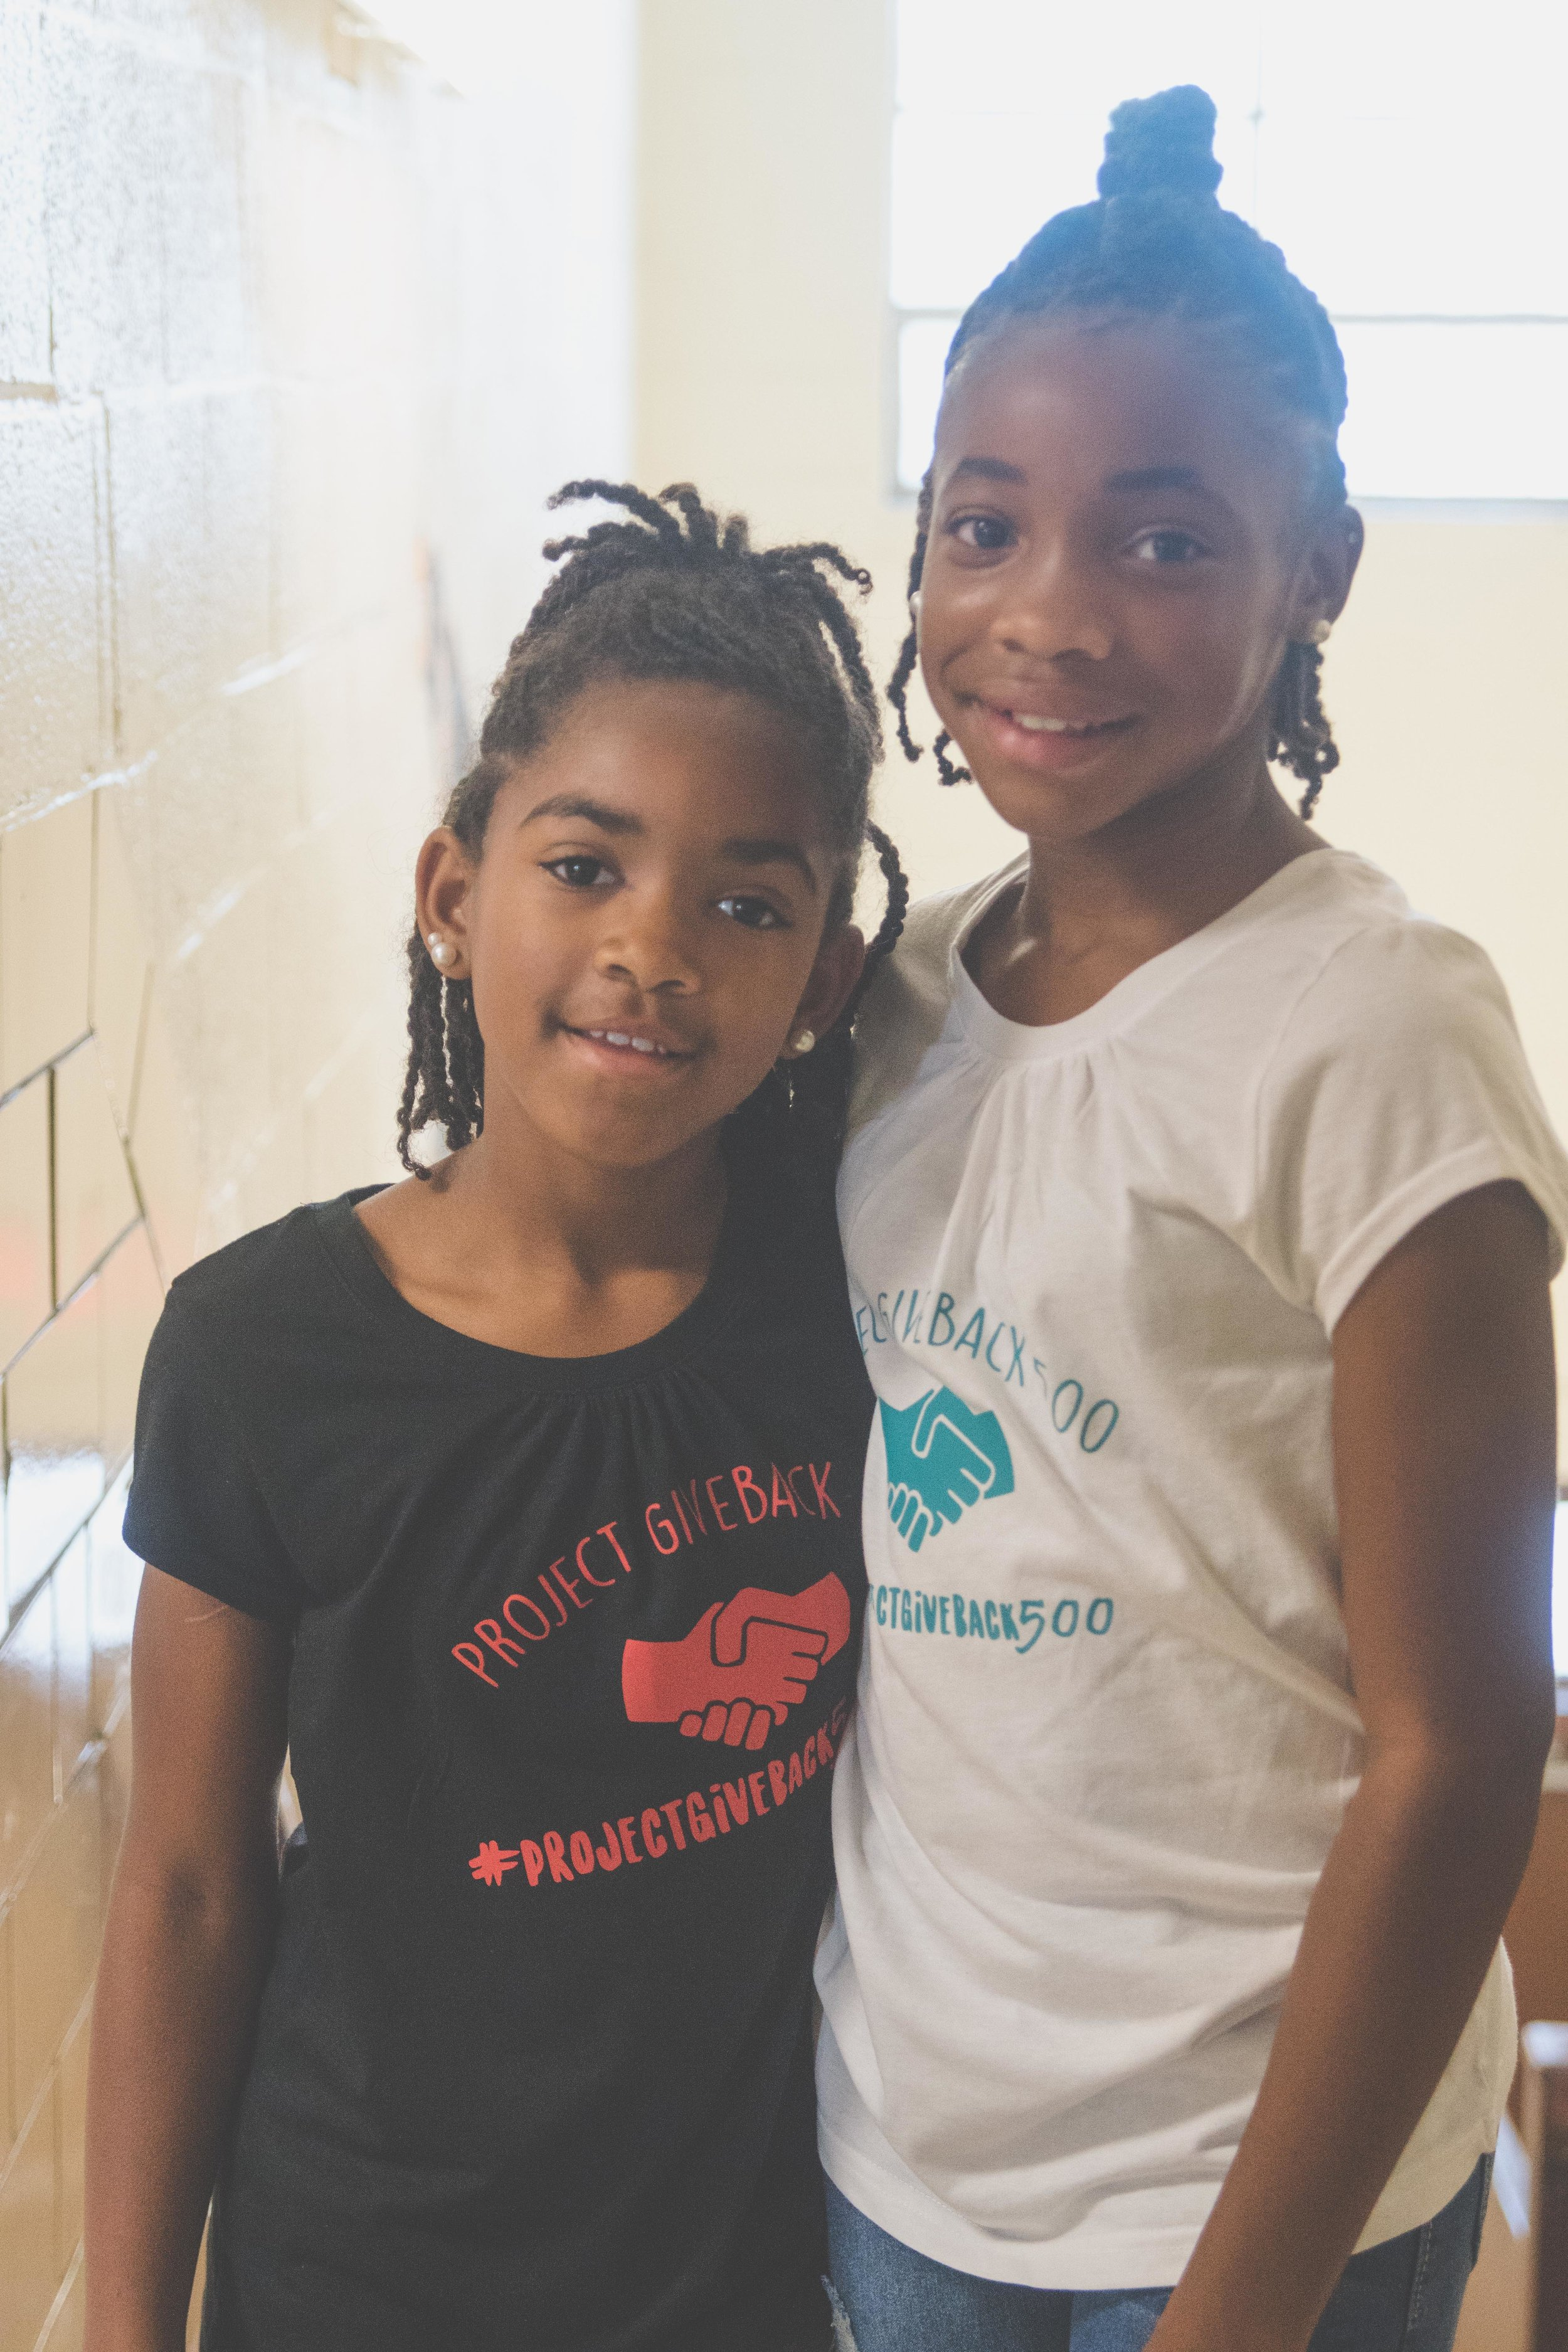 DaShai Morton with her younger sister helping for Project Give Back 500.